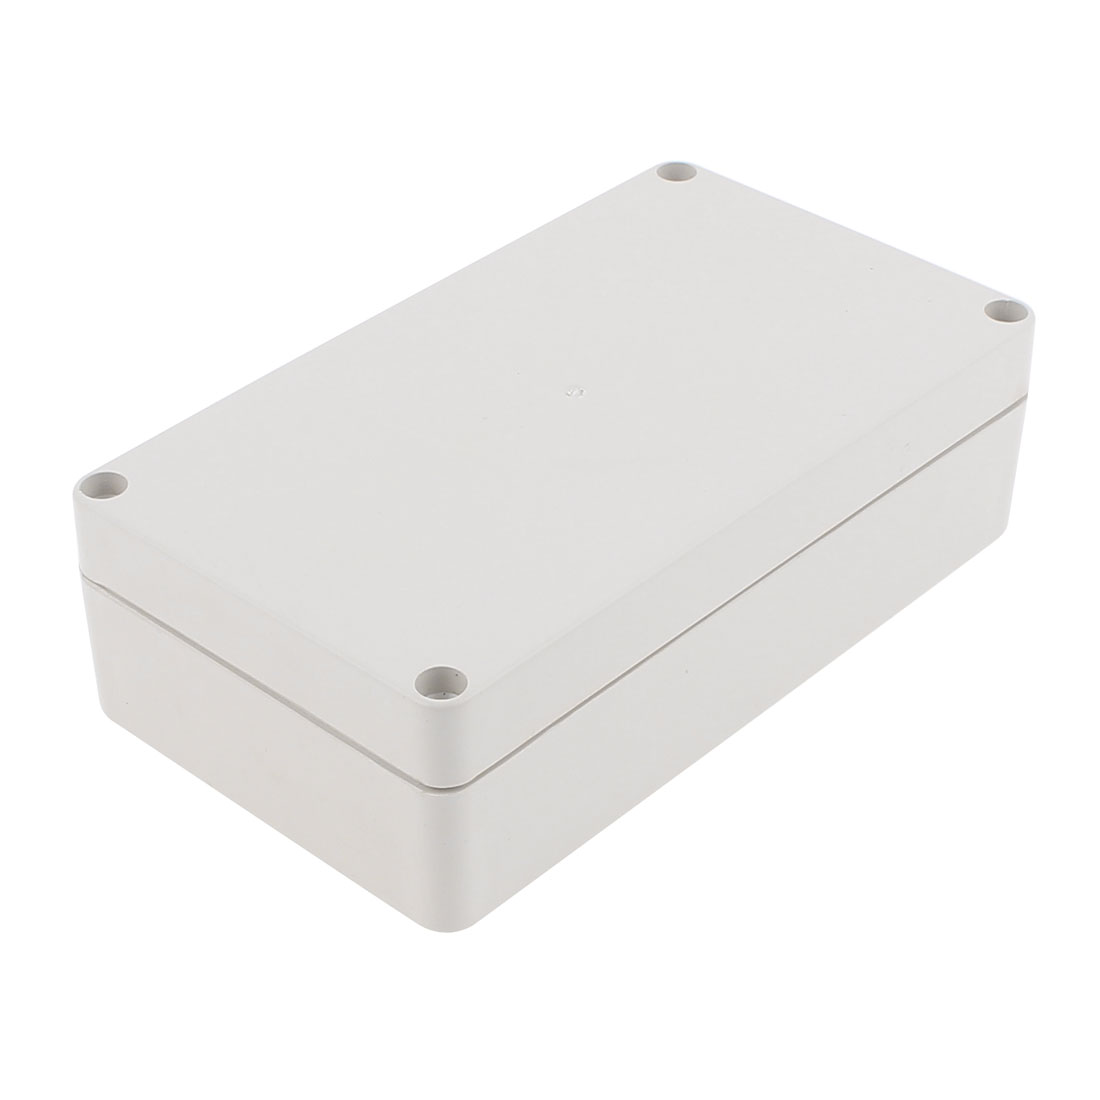 158 x 90 x 46mm Dustproof IP65 Junction Box Terminal Connecting Box Enclosure